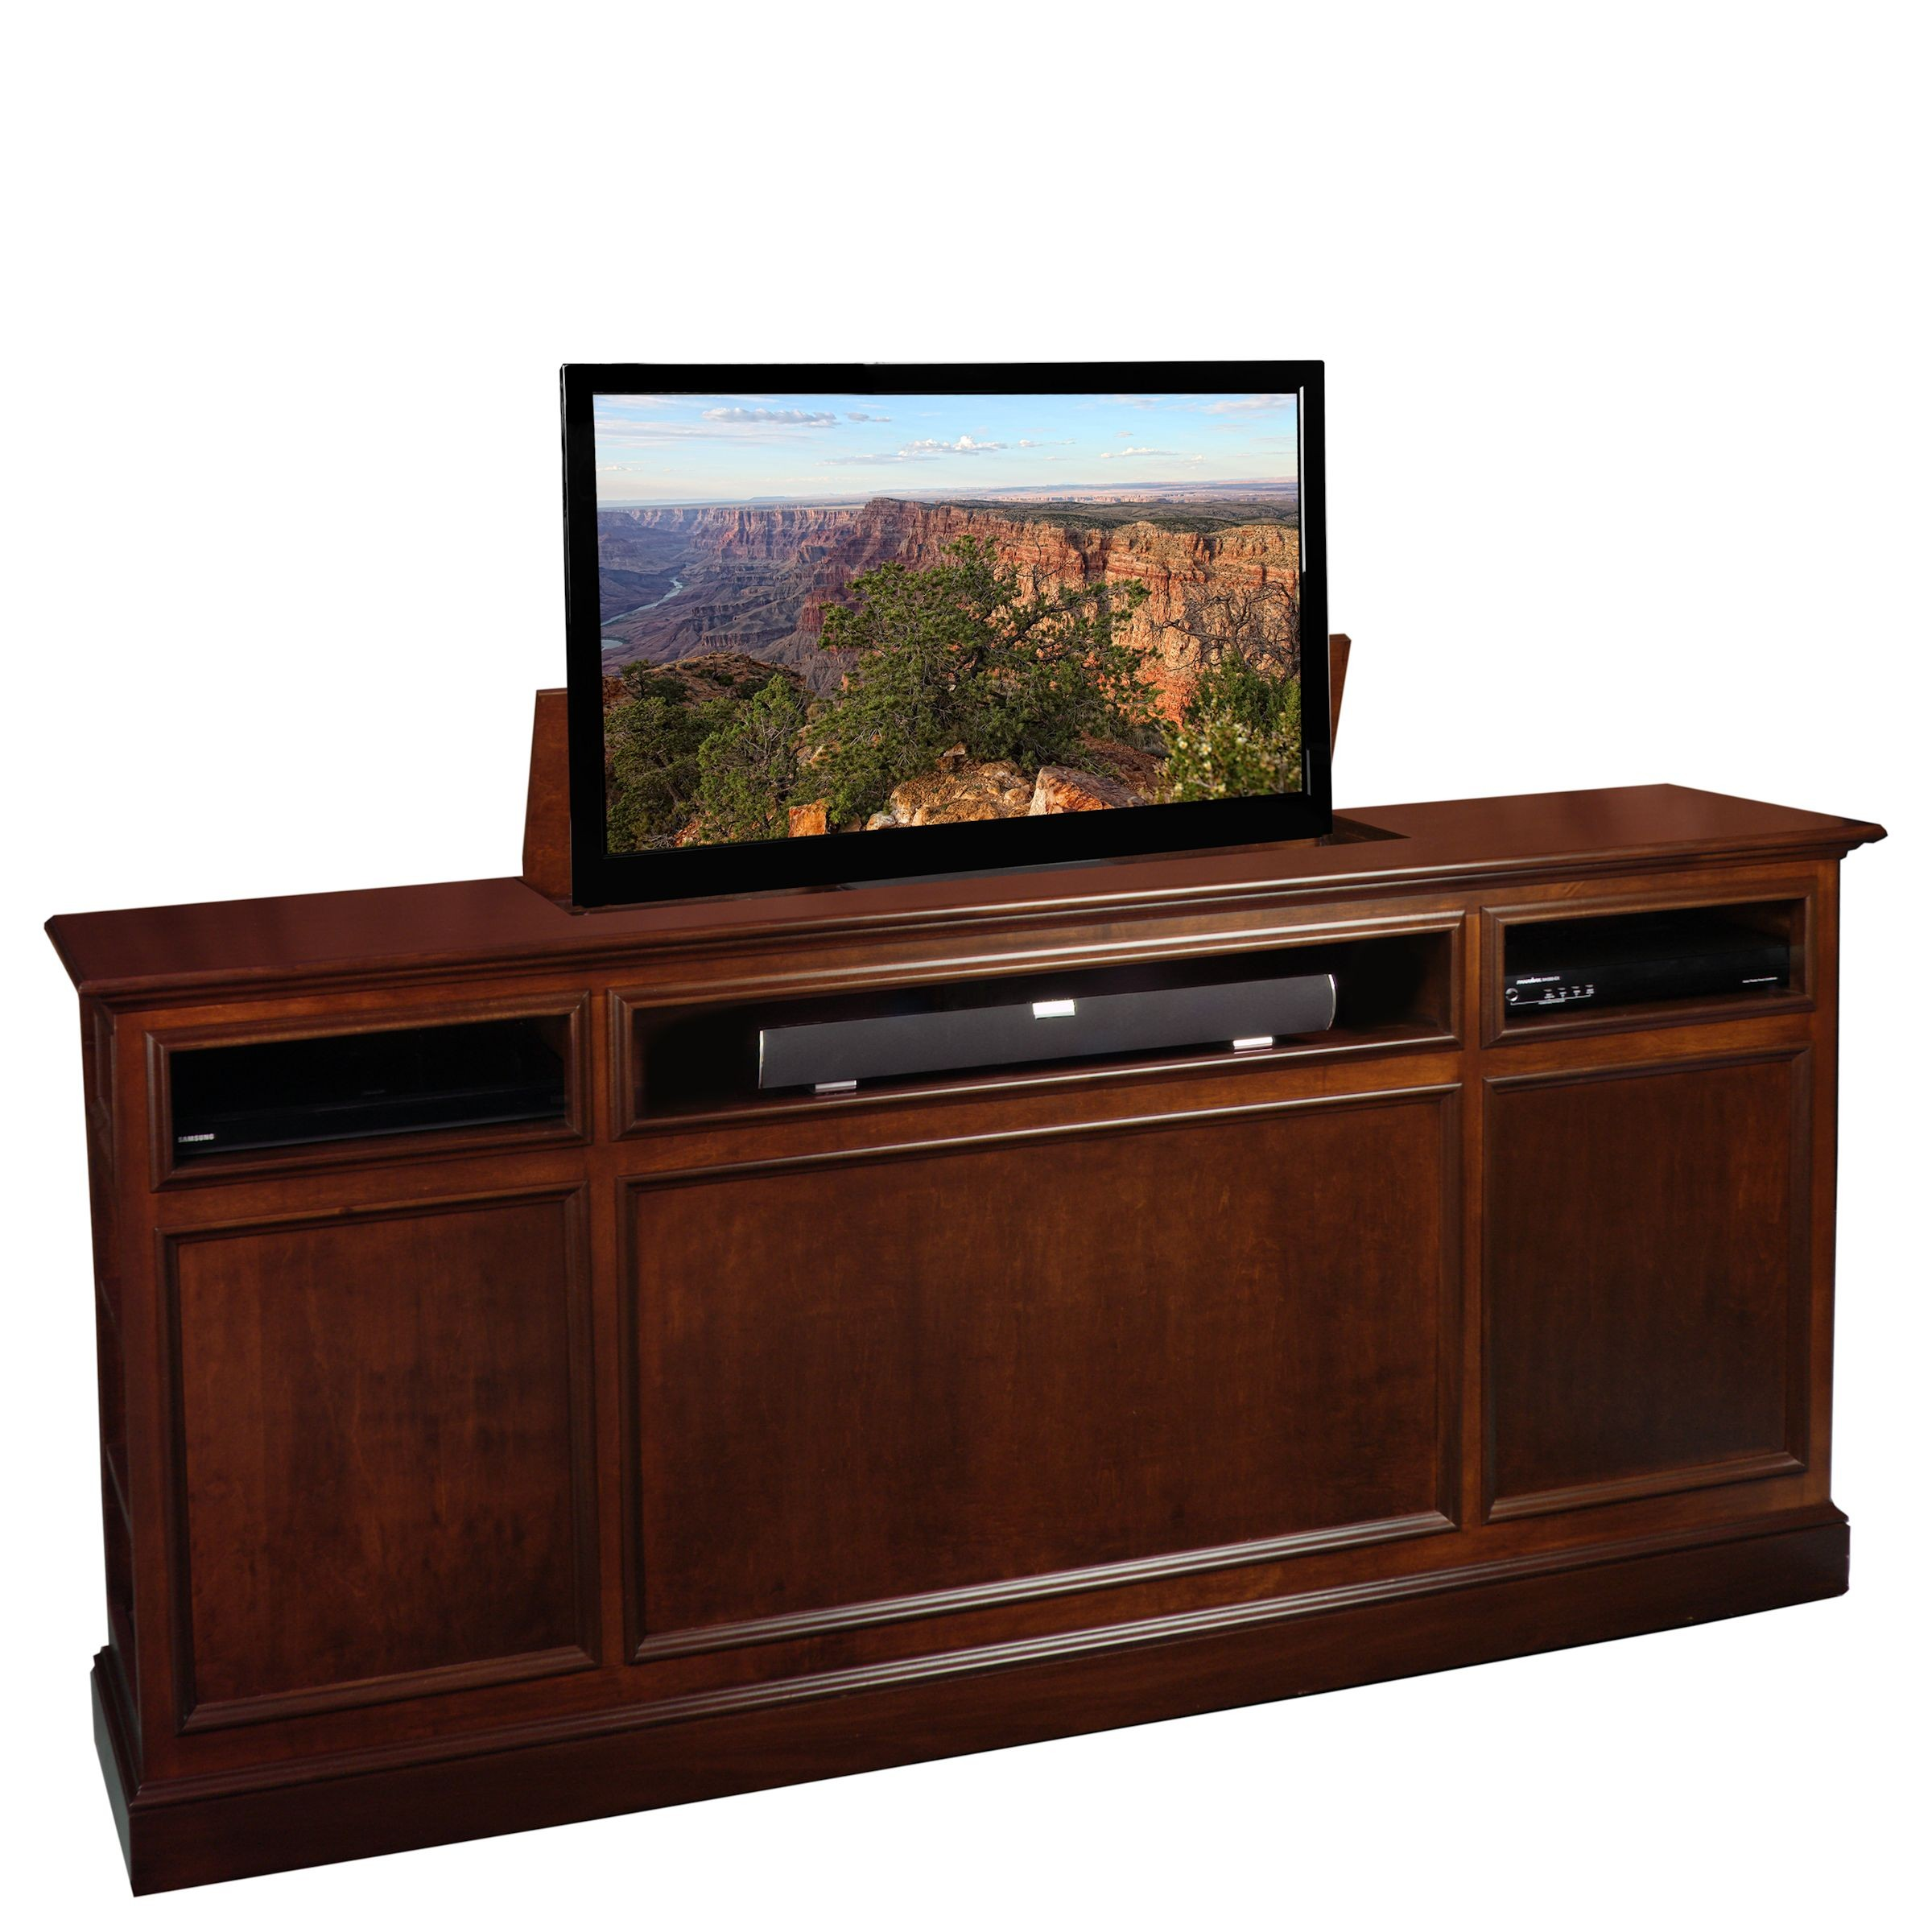 suite tv lift cabinet. Black Bedroom Furniture Sets. Home Design Ideas